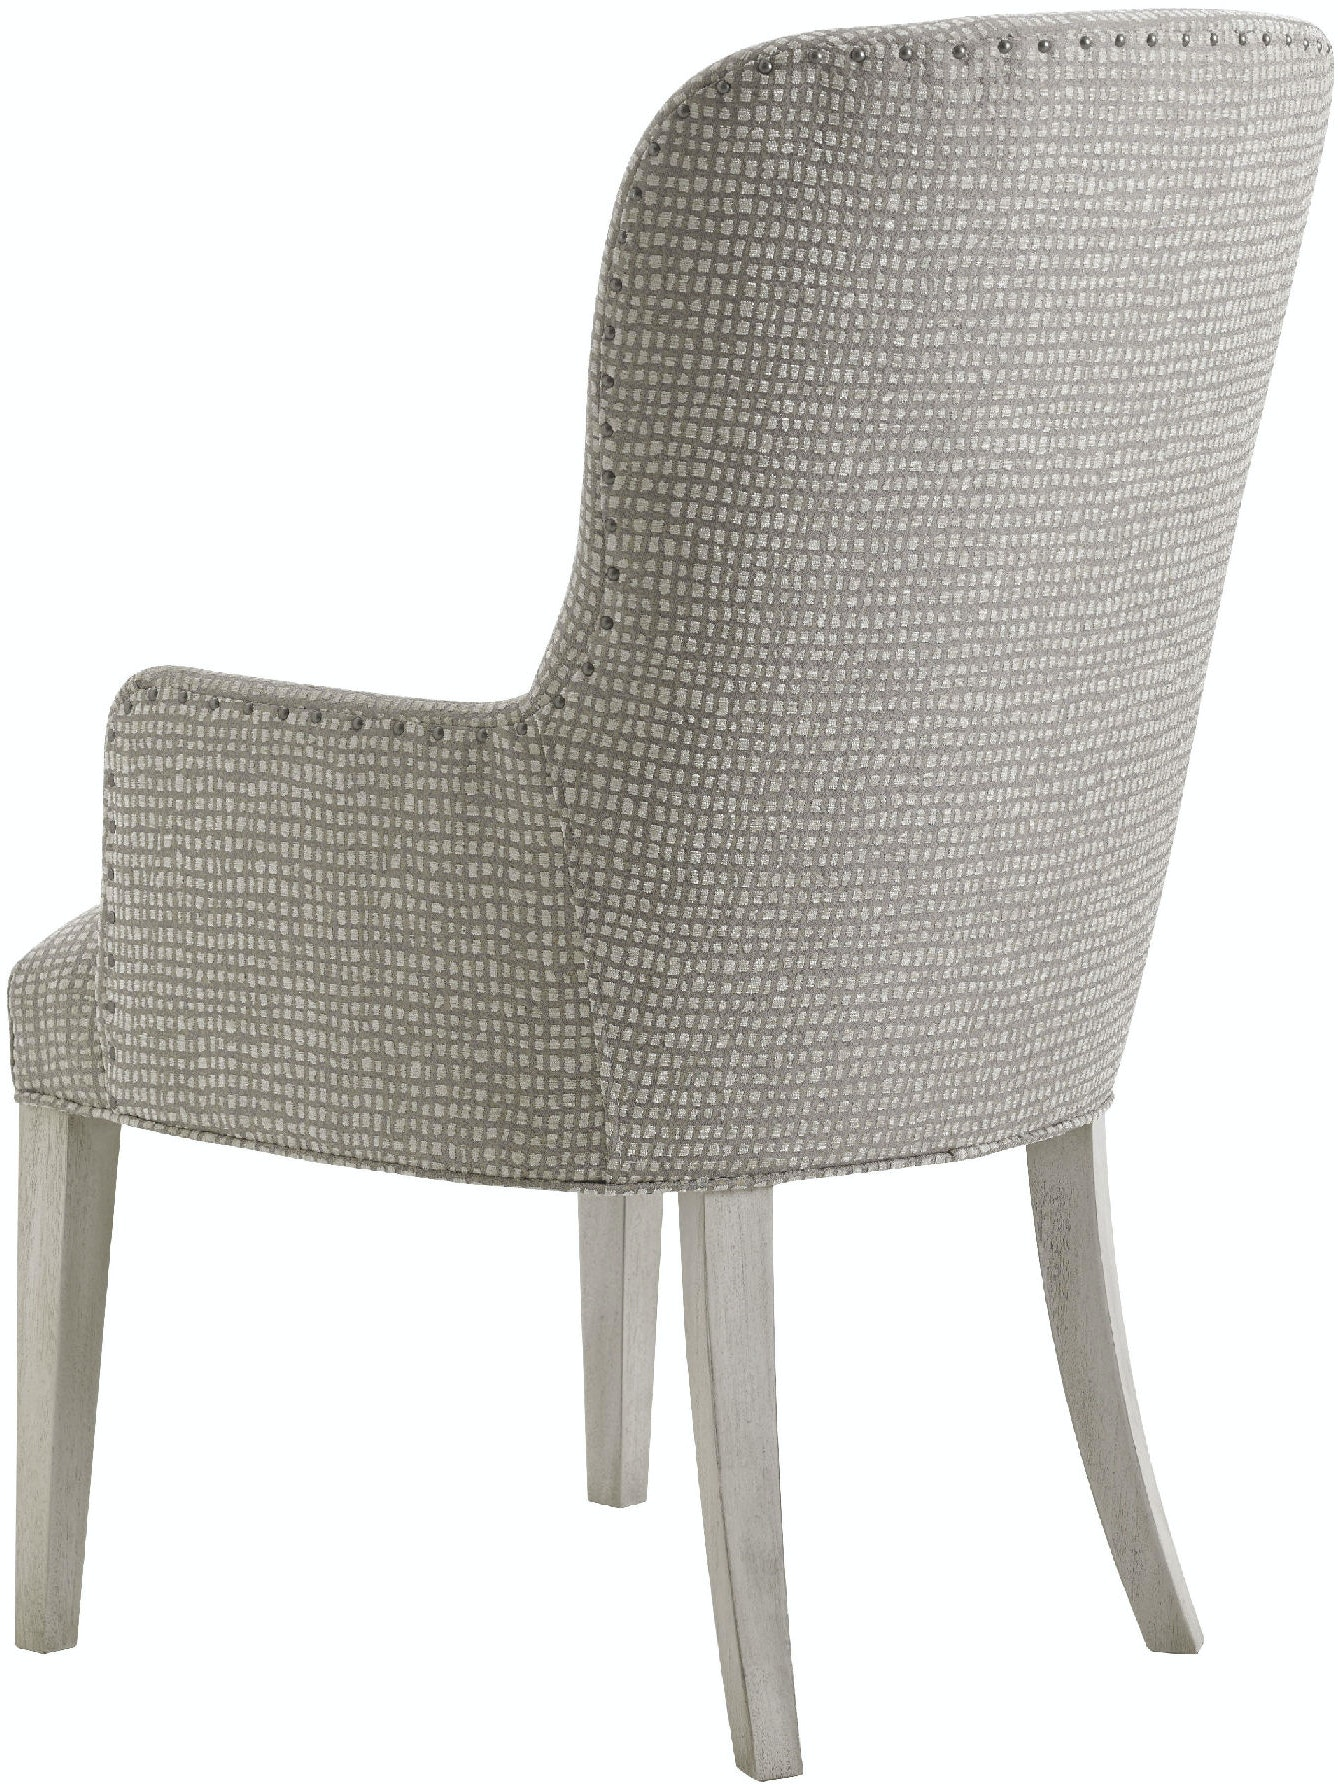 Lexington Dining Room Baxter Upholstered Arm Chair 714 883